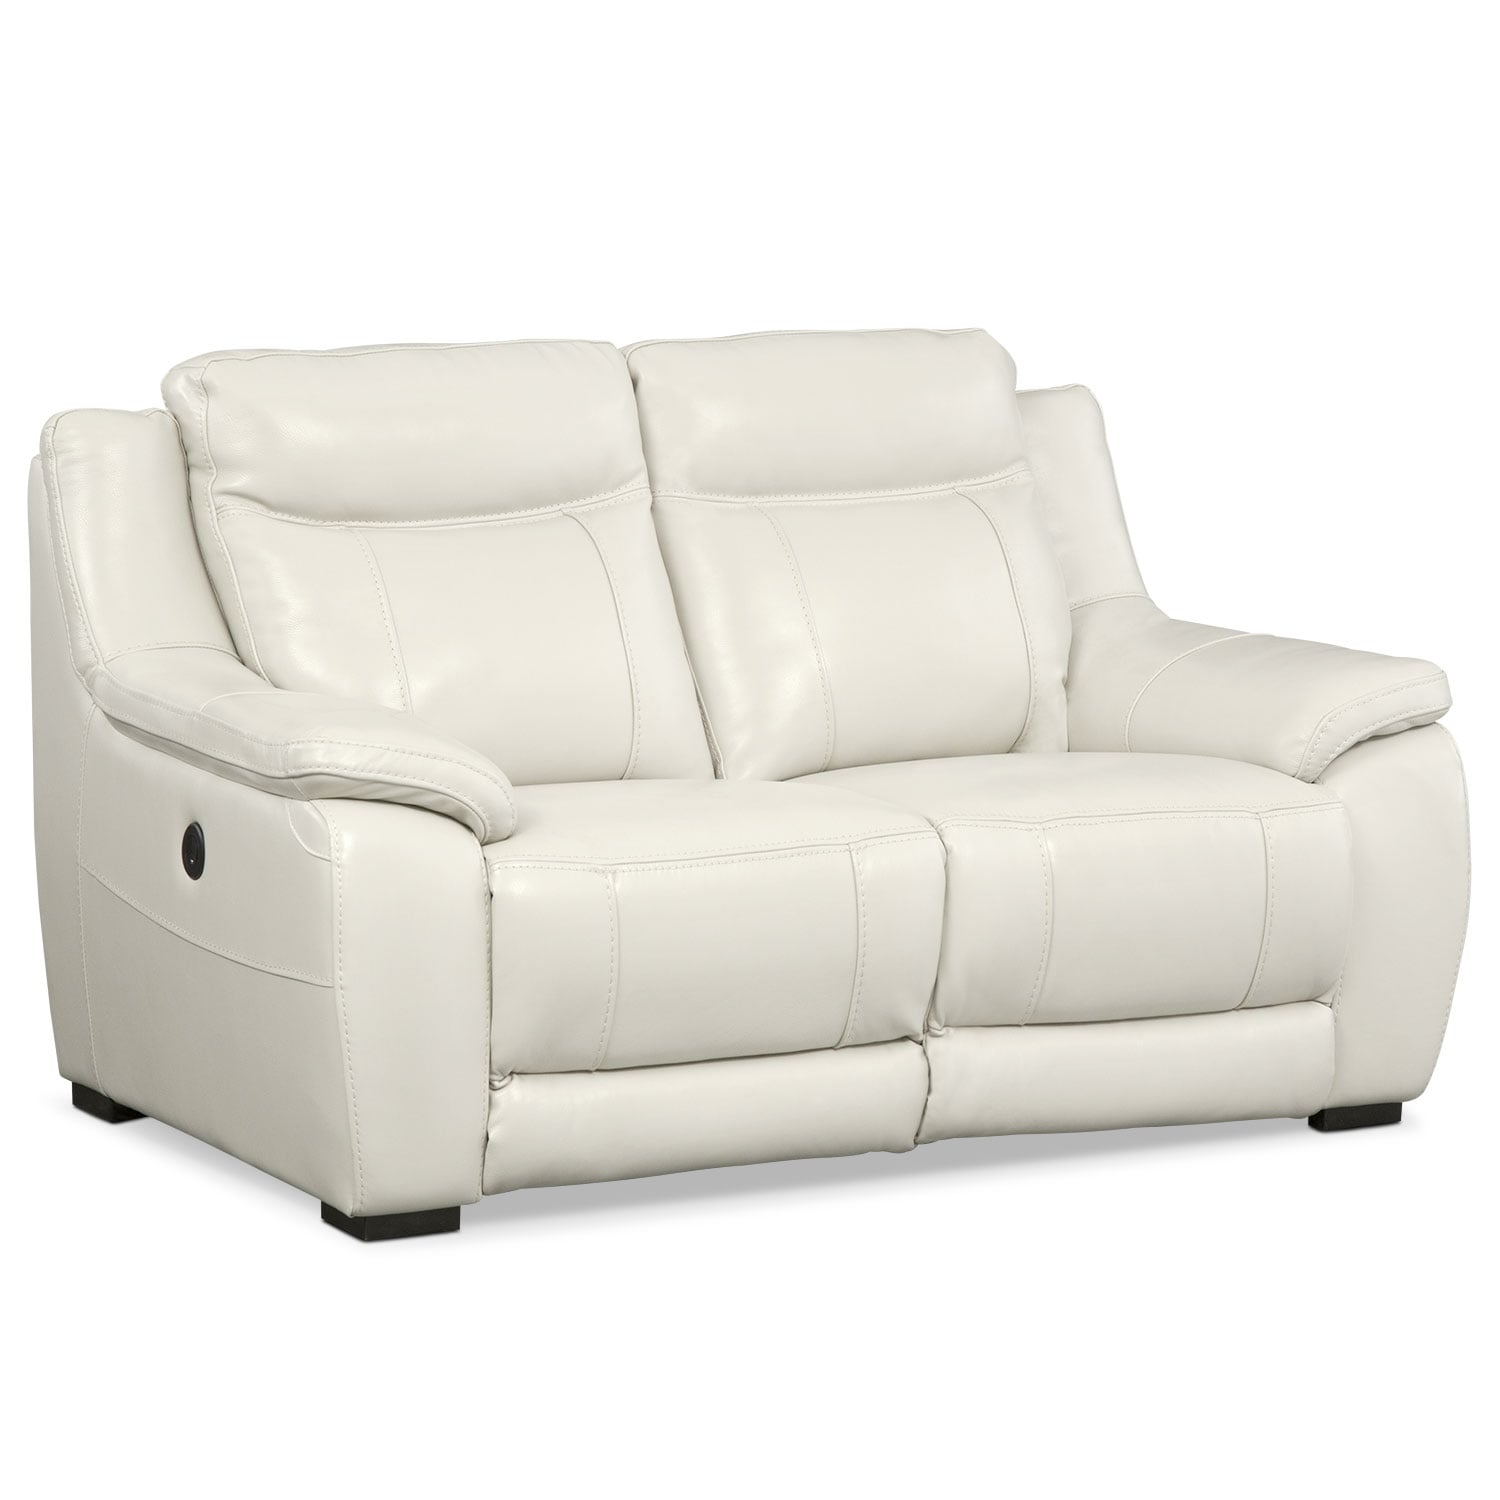 Reclining Loveseats | Value City Furniture and Mattresses